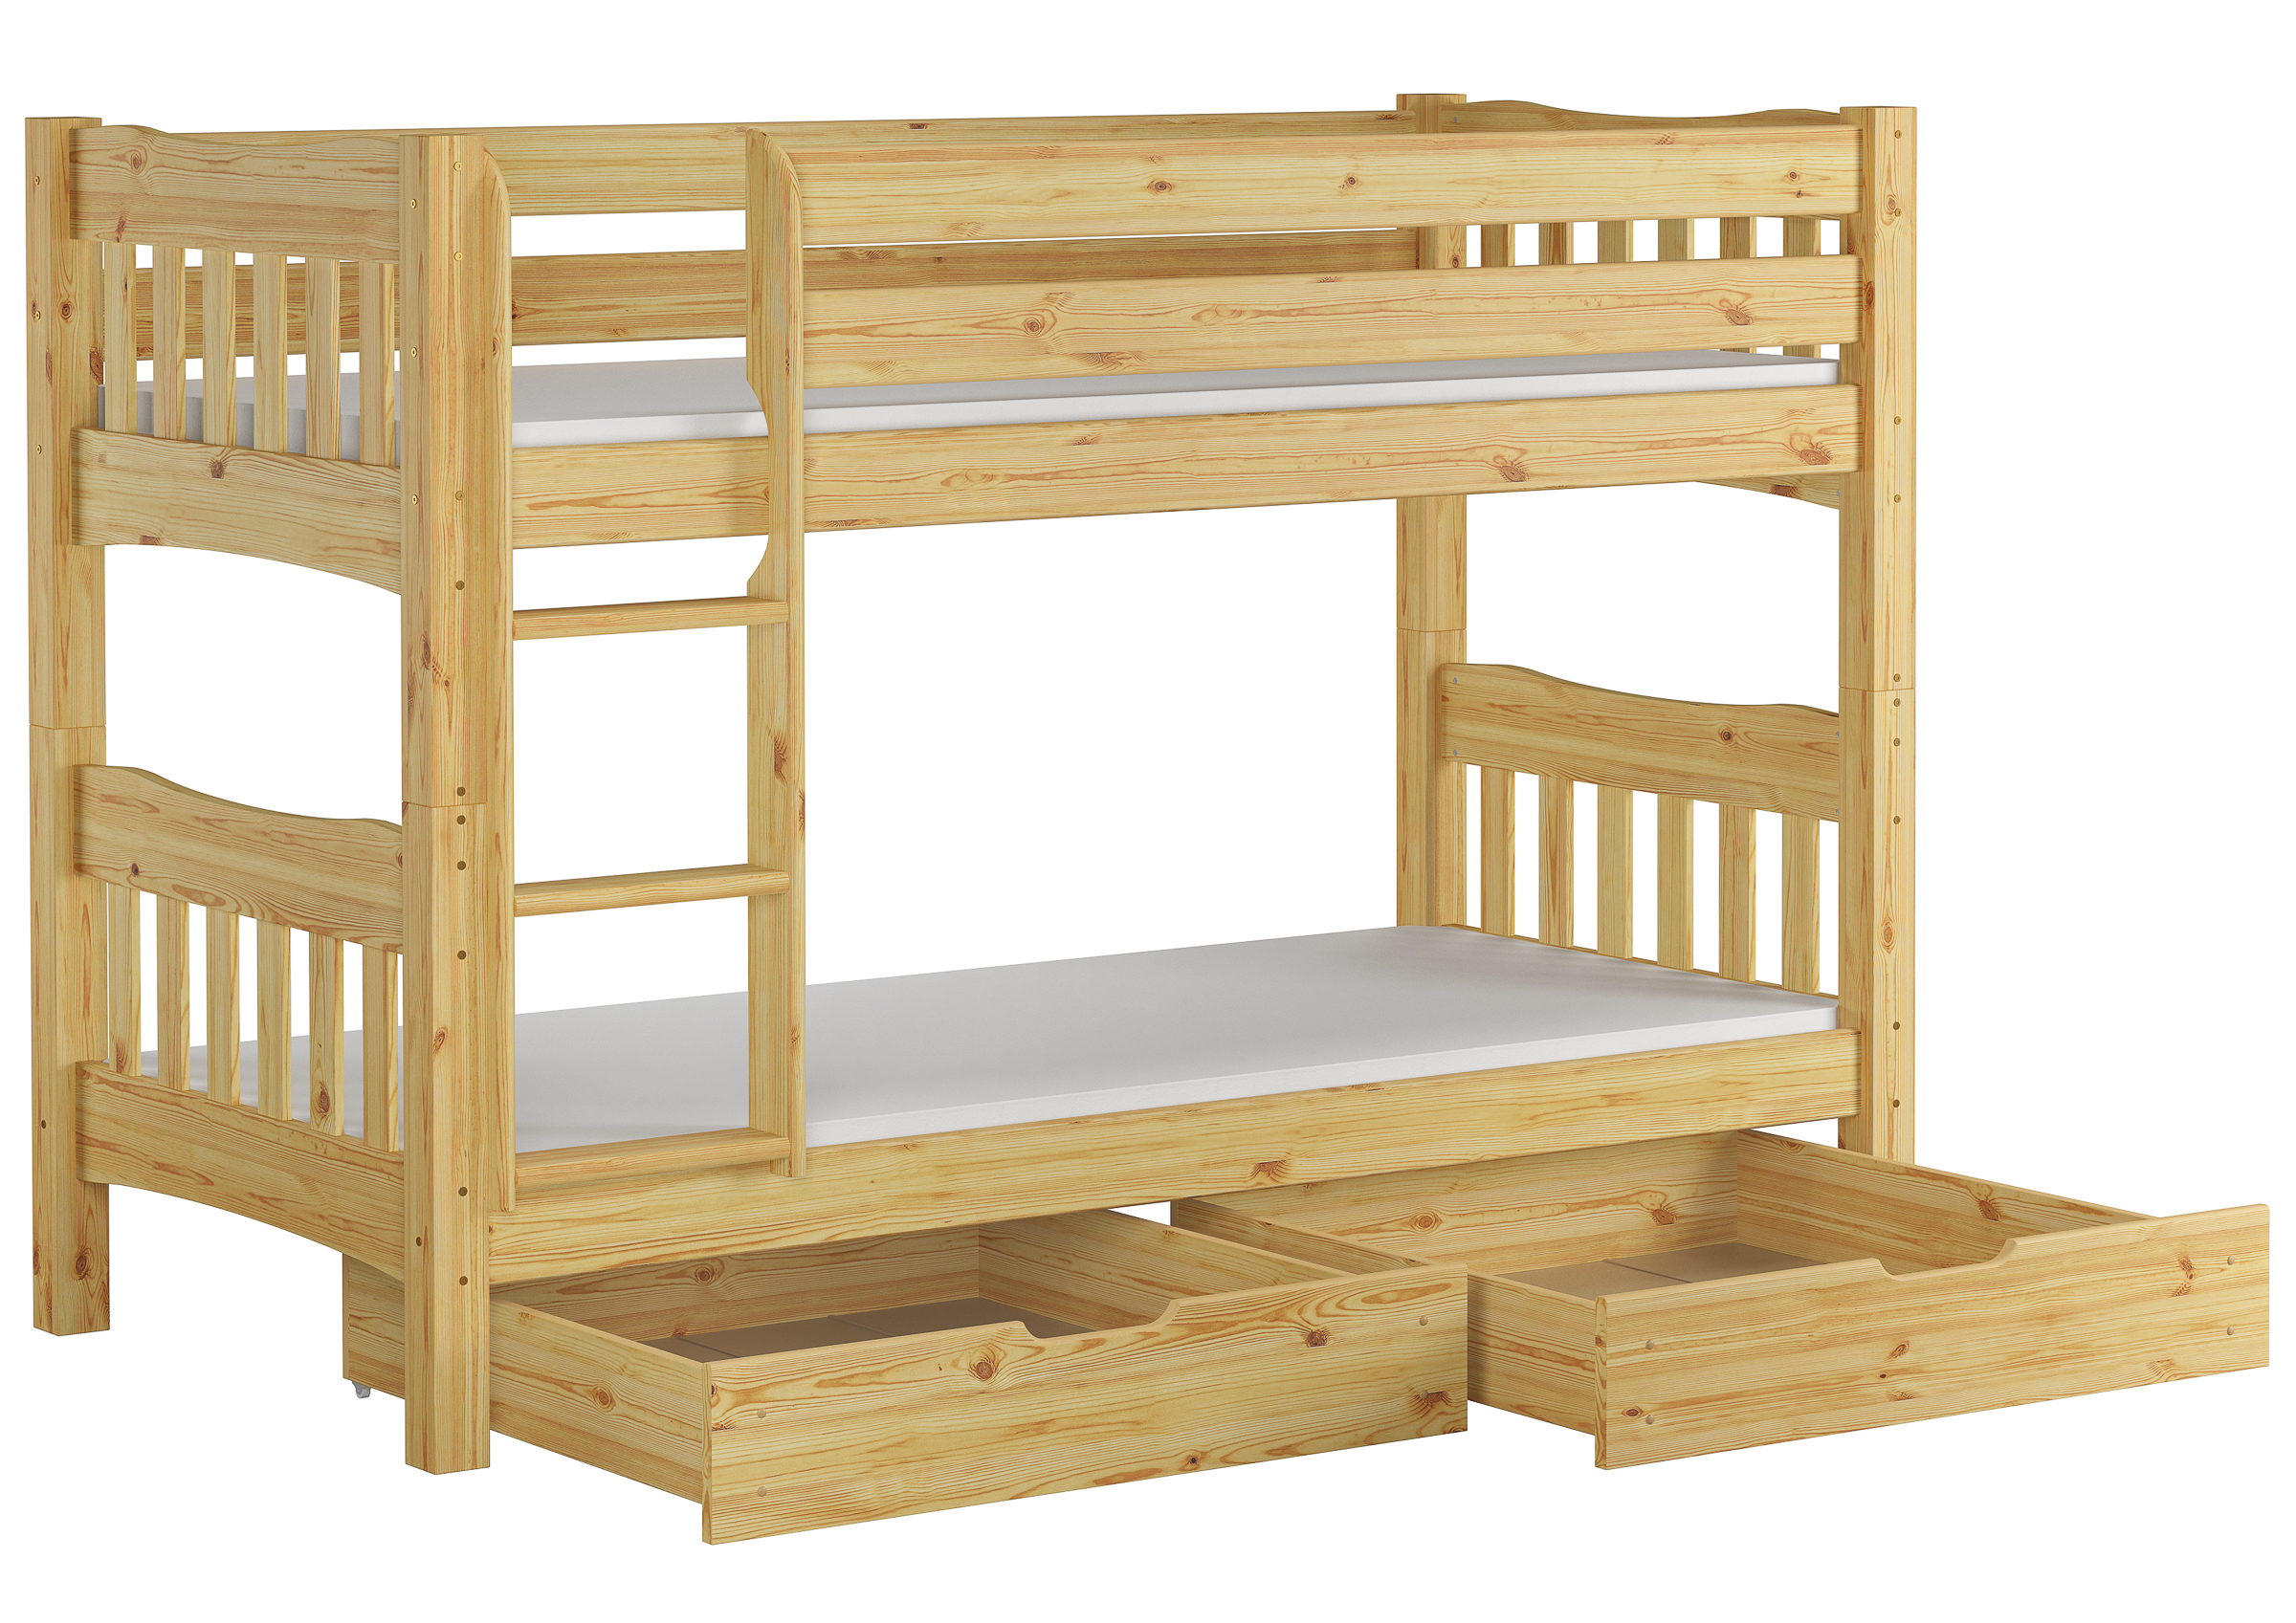 Lovely Pine Bunk Bed With Mattresses 90x200 On Rigid Slats 2 Storage Drawers 60 15 09ni70ms2 Ceres Webshop